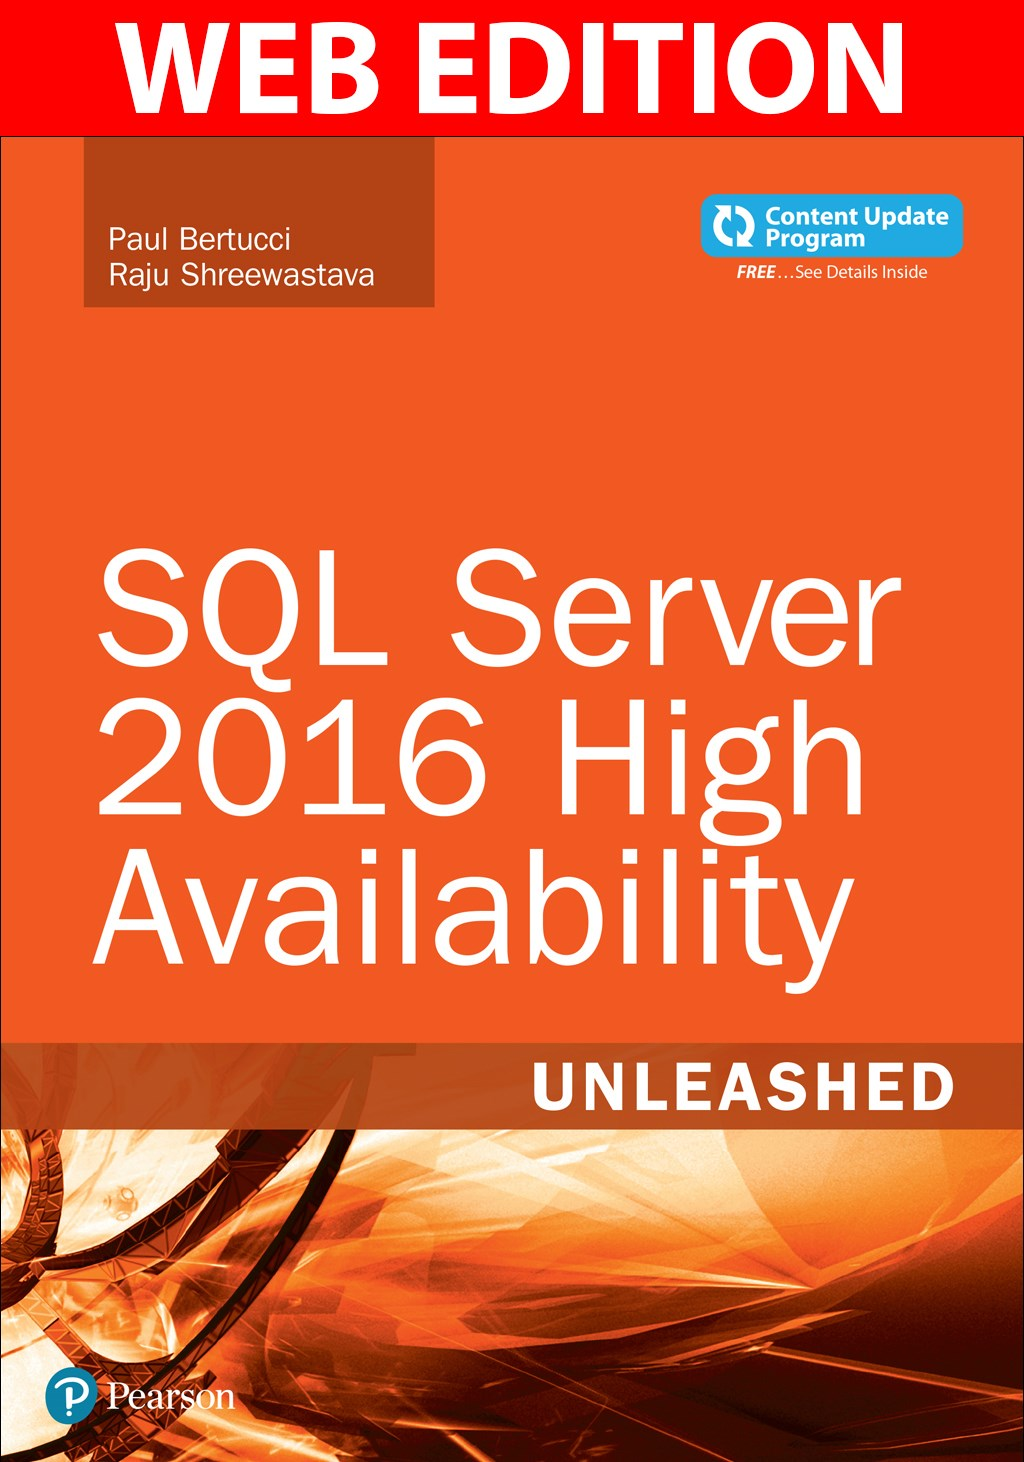 SQL Server 2016 High Availability Unleashed  (includes Content Update Program), Web Edition